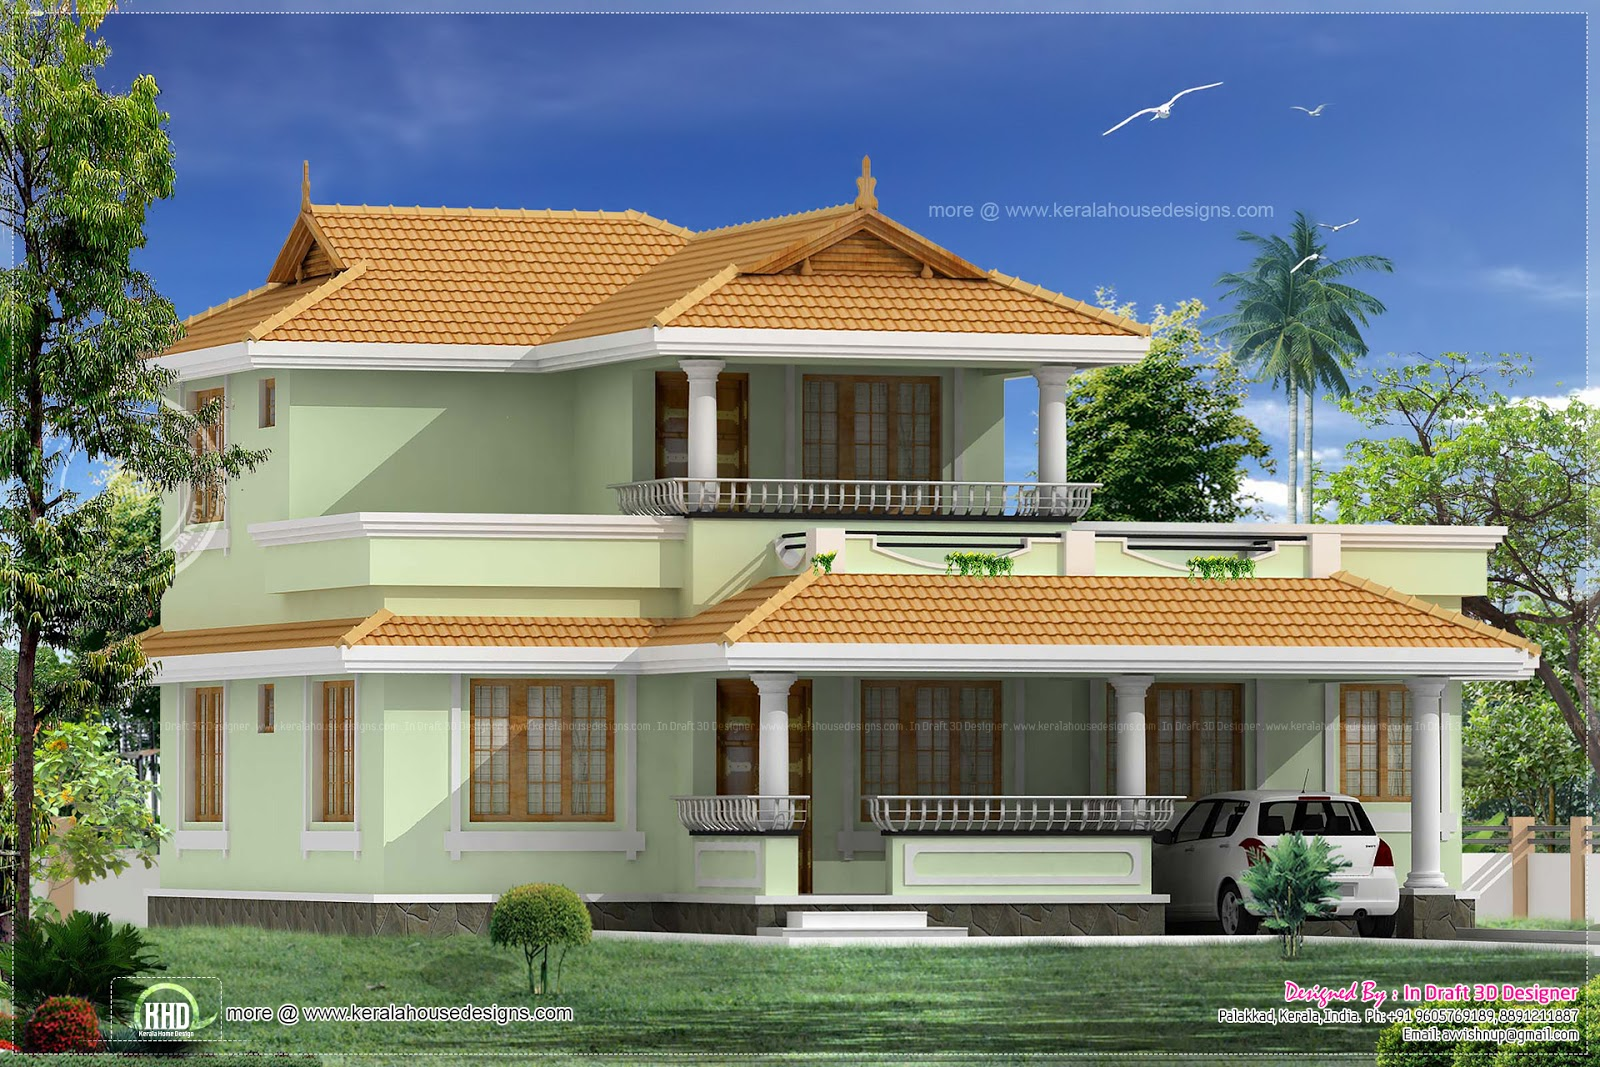 3 bed room kerala traditional villa in 1754 sqft kerala for Traditional home designs